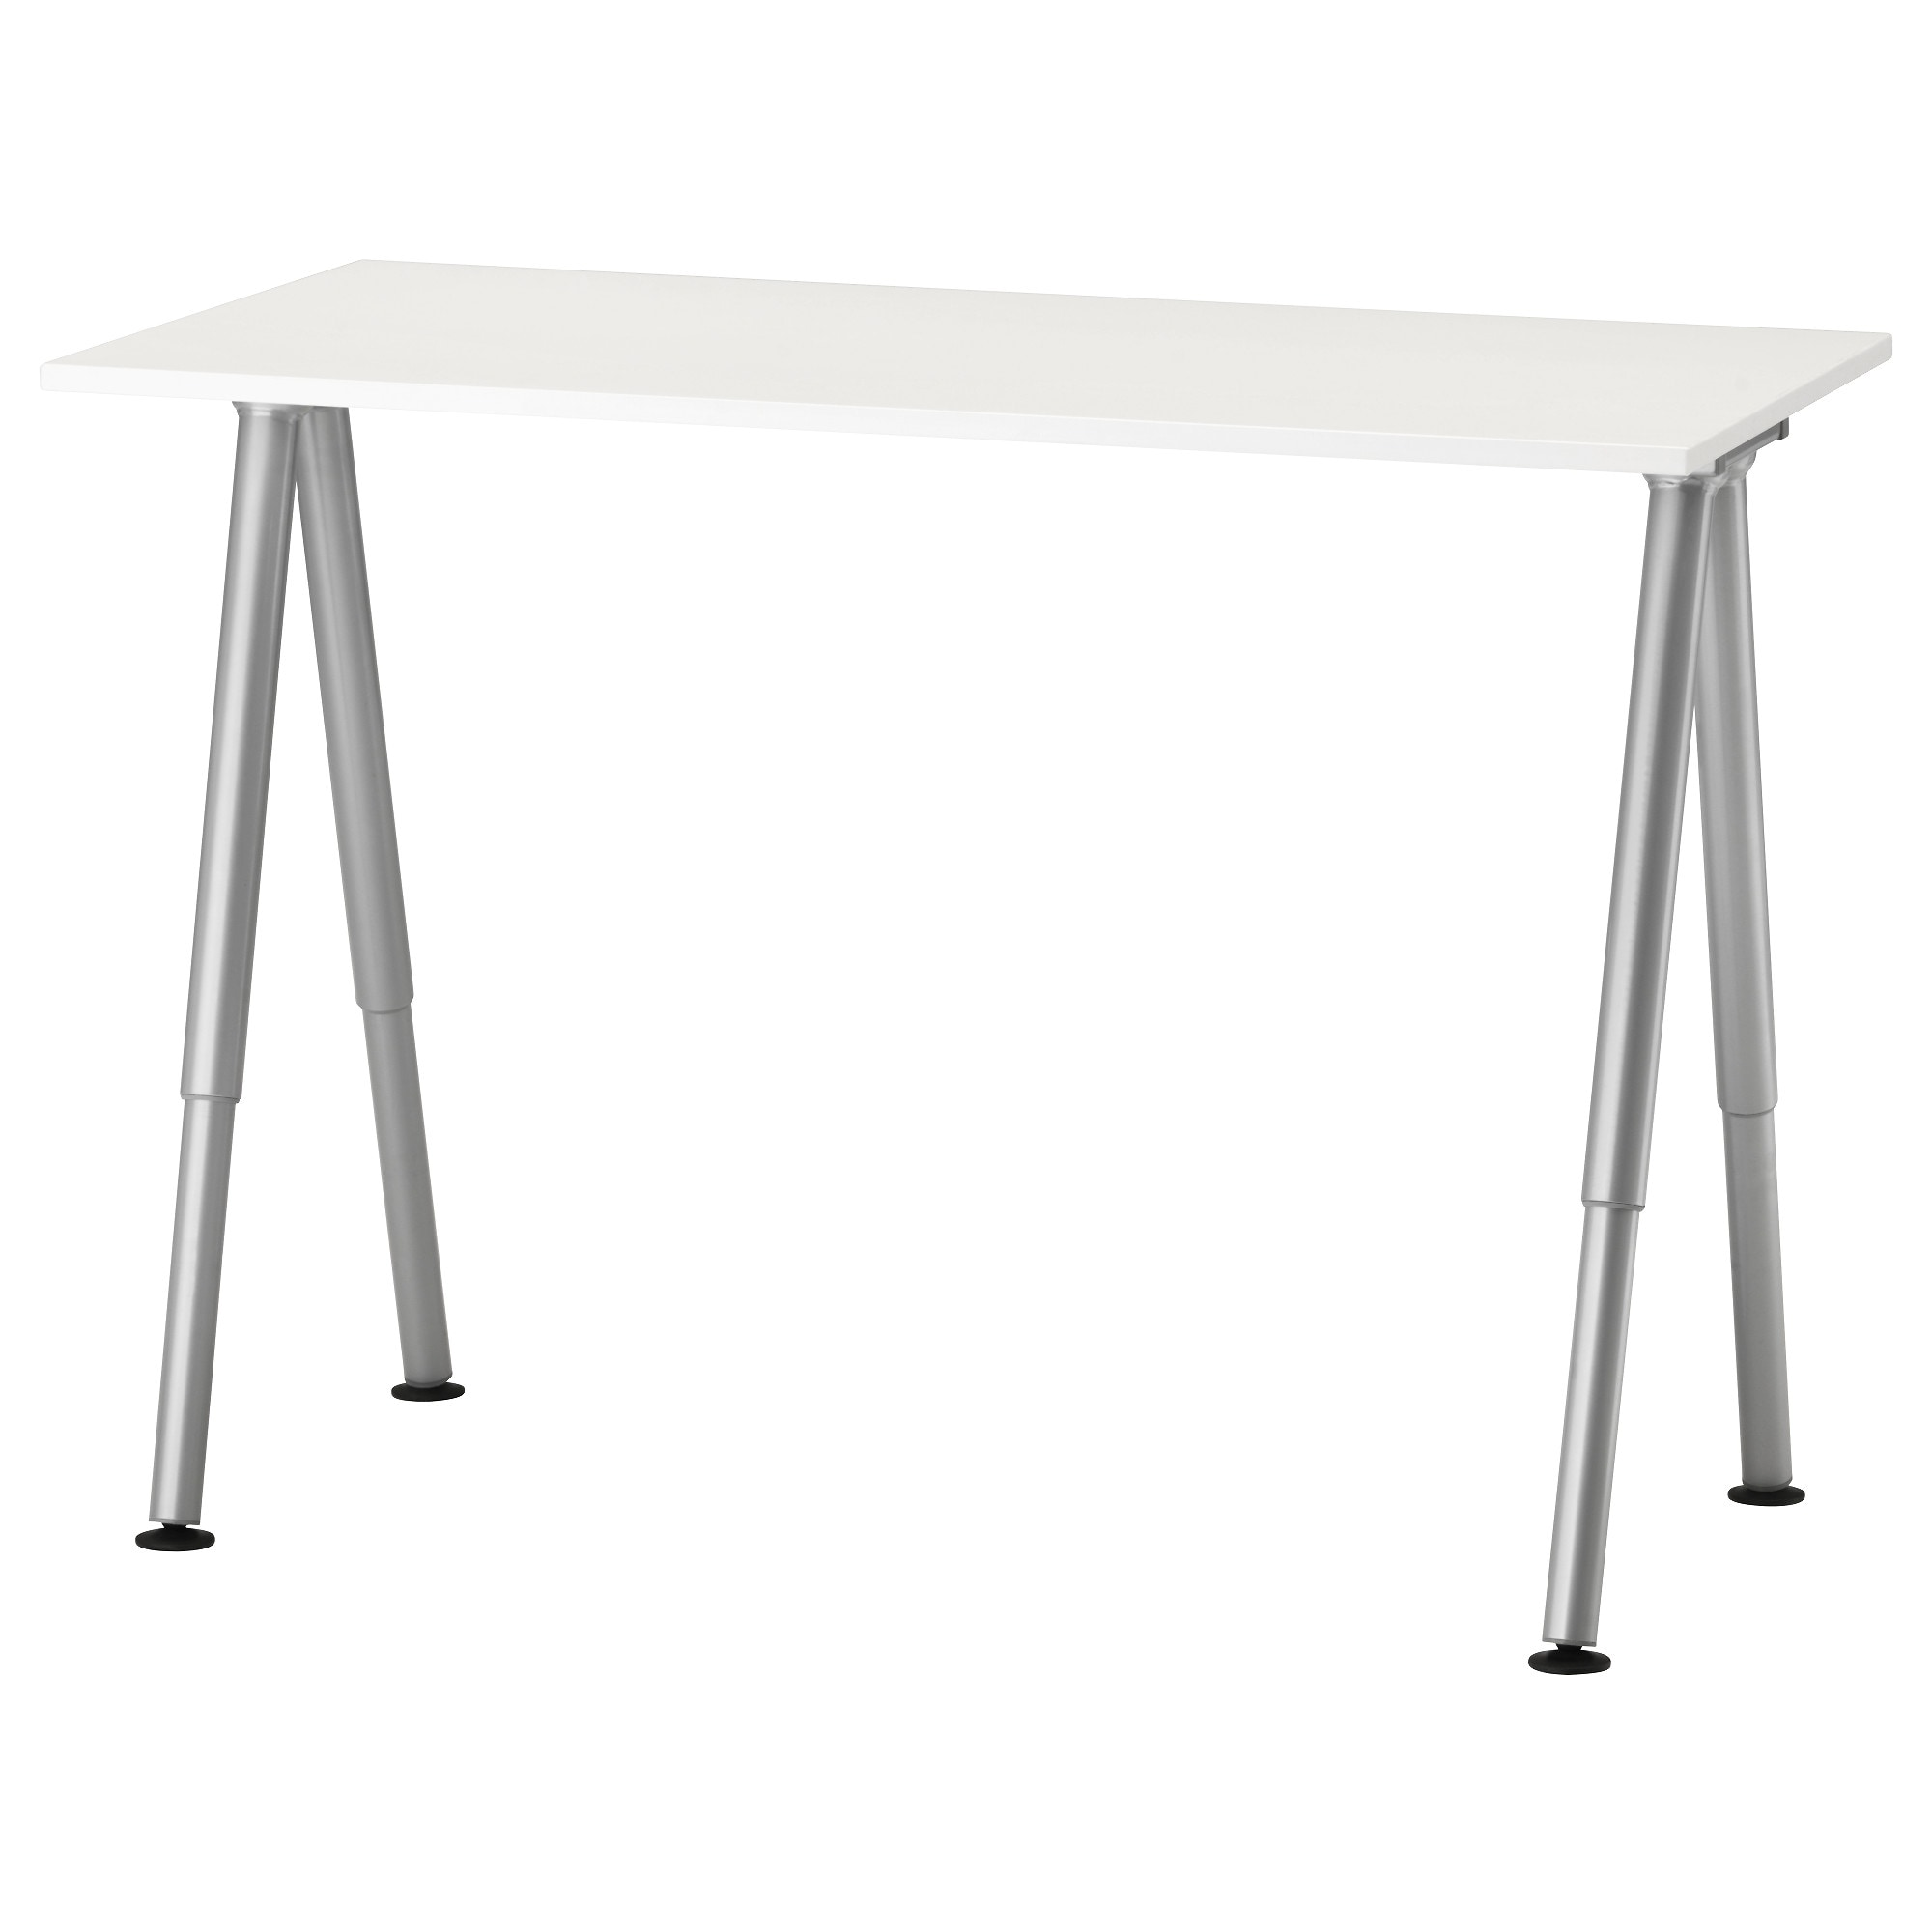 Ikea galant white glass desk - Glass office desk ikea ...